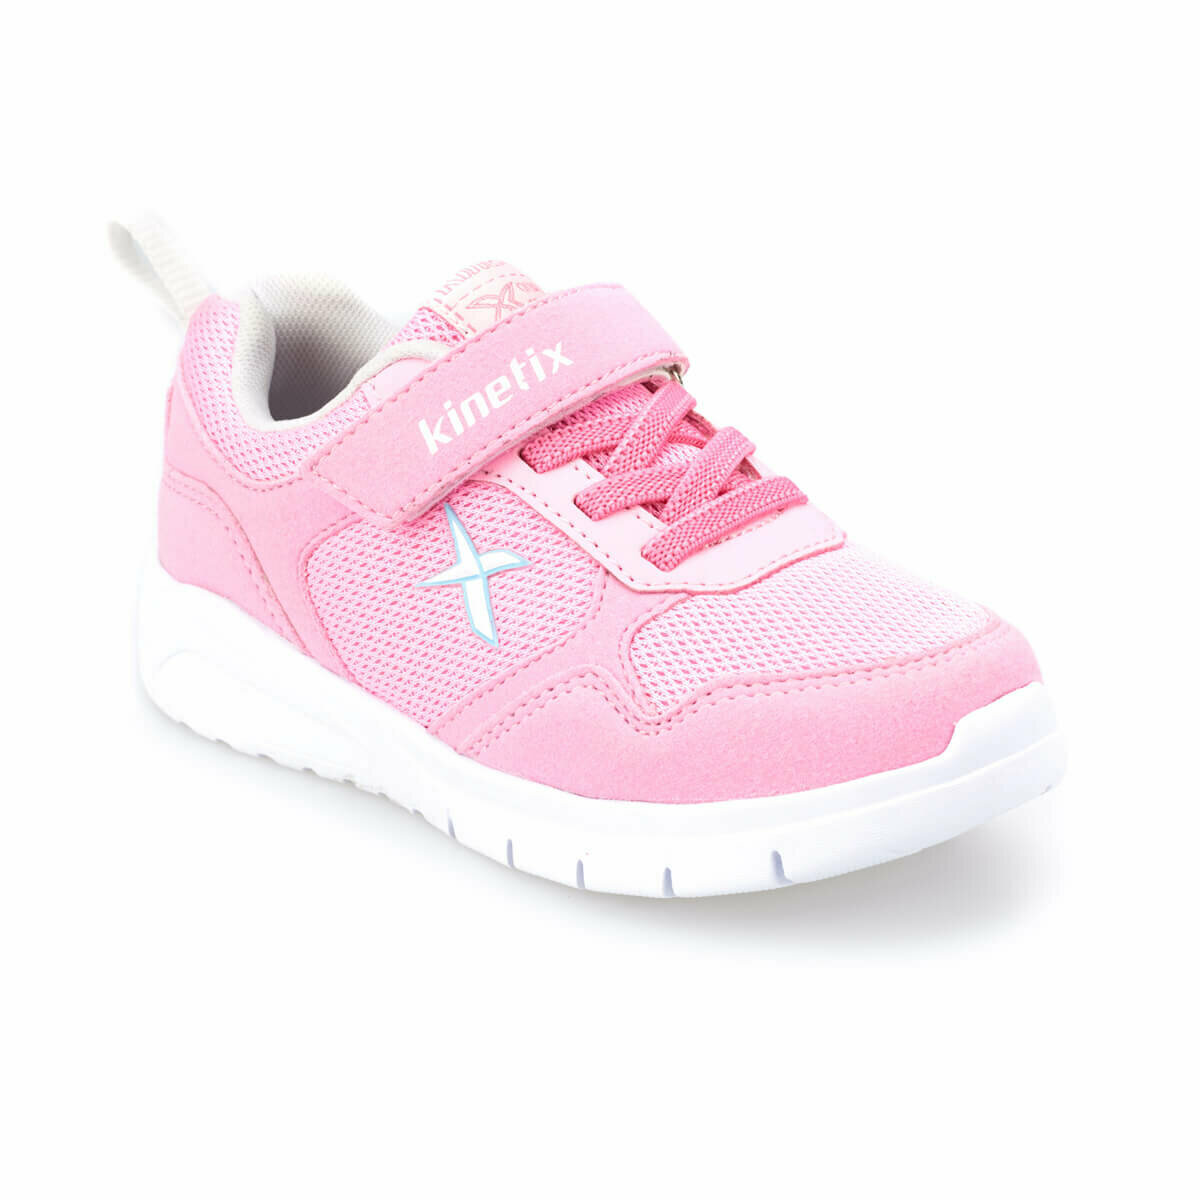 FLO RINTO Light Pink Female Child Walking Shoes KINETIX